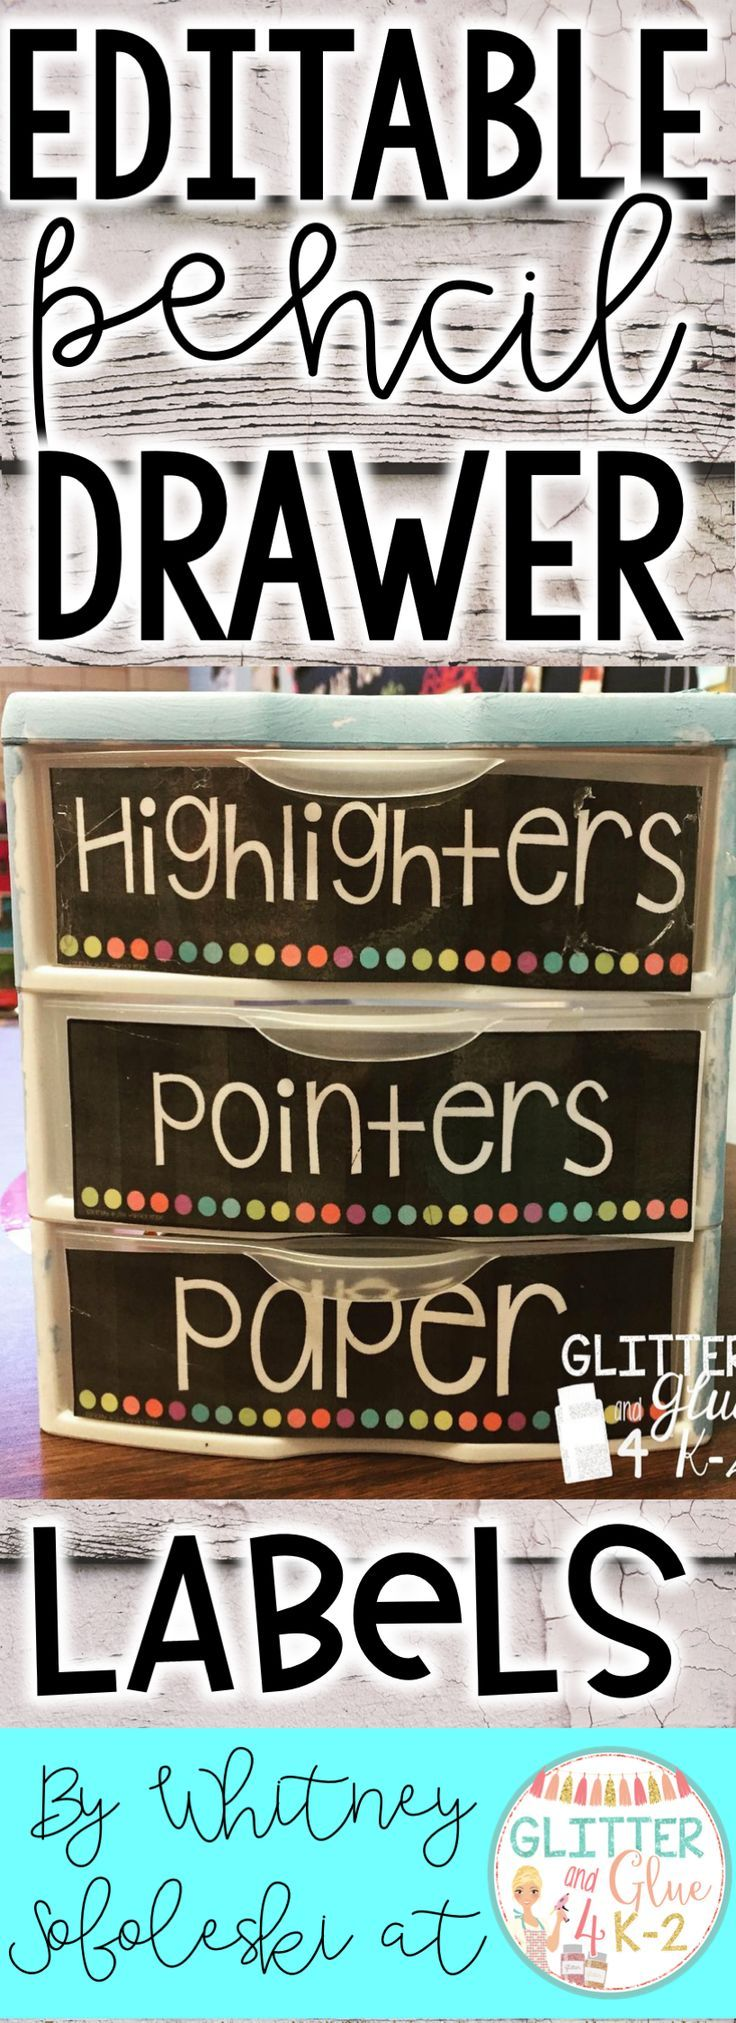 Jazz up and organize your writing center with these fun labels for your drawers! Go back to school organized! Keywords: classroom décor, classroom organization, writing center, pencil management, classroom inspiration, classroom management, kindergarten, first grade, second grade, writing, back to school